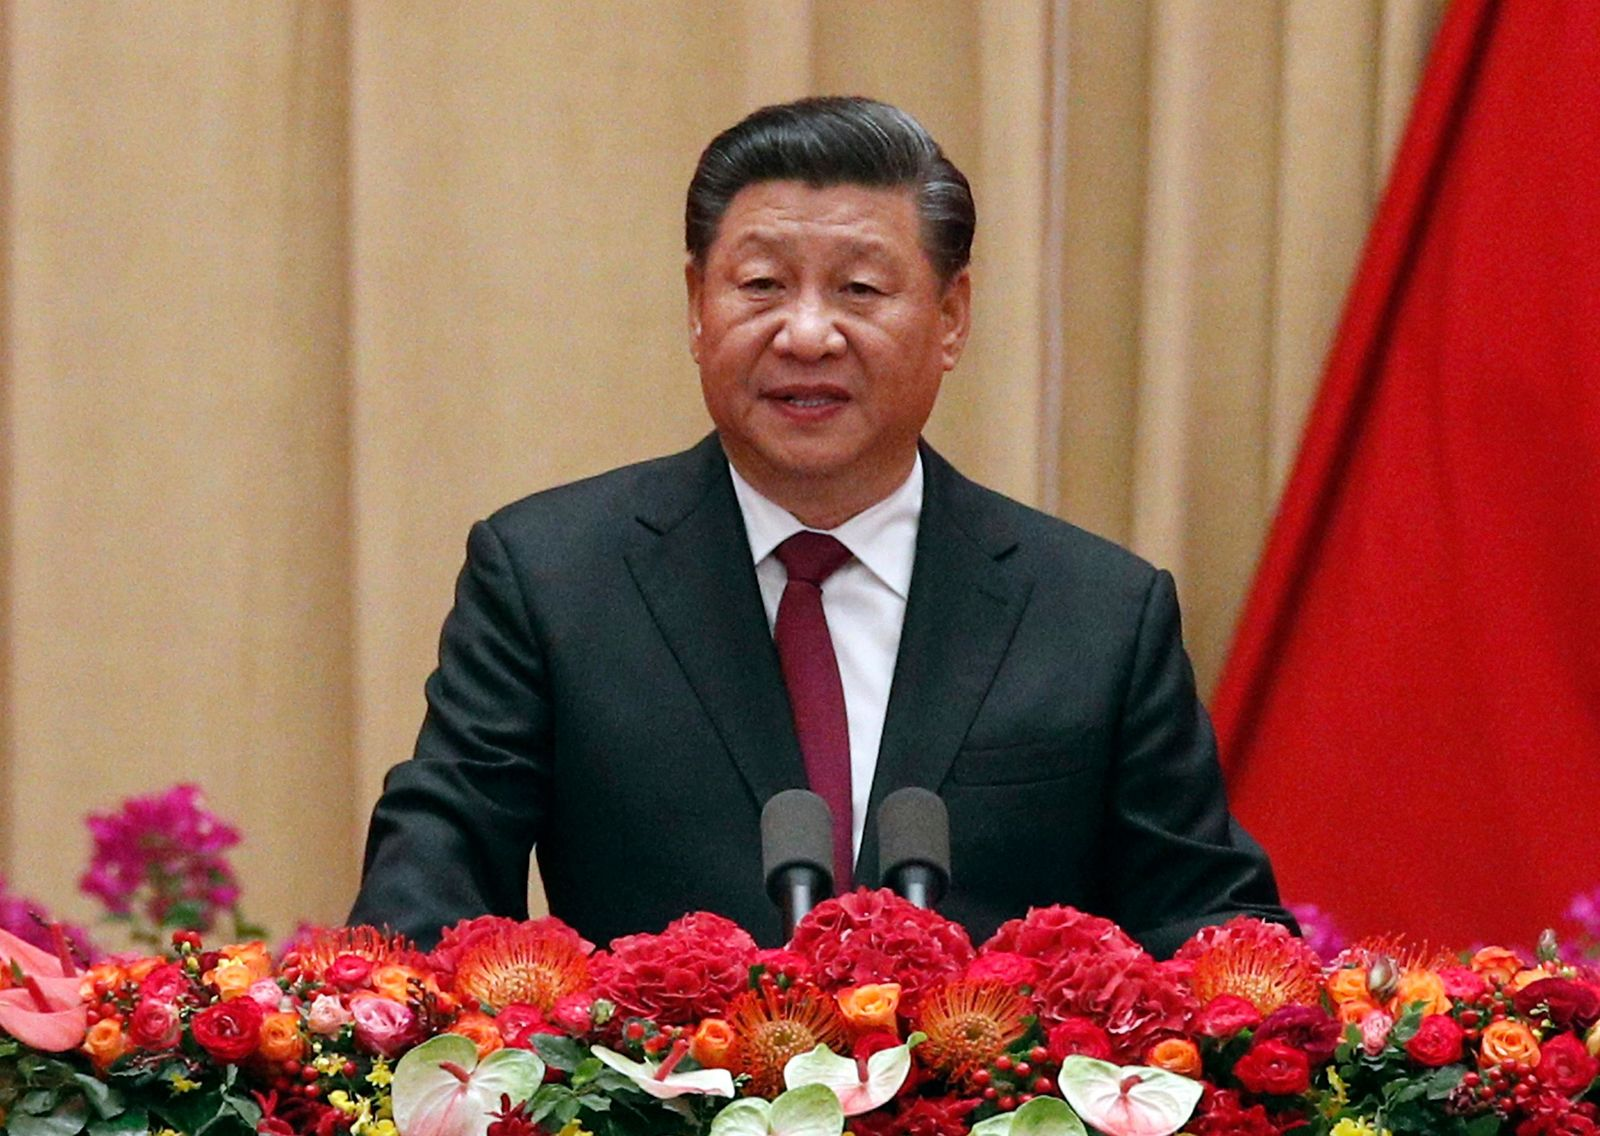 FILE - In this Sept. 30, 2019, file photo, Chinese President Xi Jinping speaks at a dinner marking the 70th anniversary of the founding of the People's Republic of China at the Great Hall of the People in Beijing. (AP Photo/Andy Wong, File)